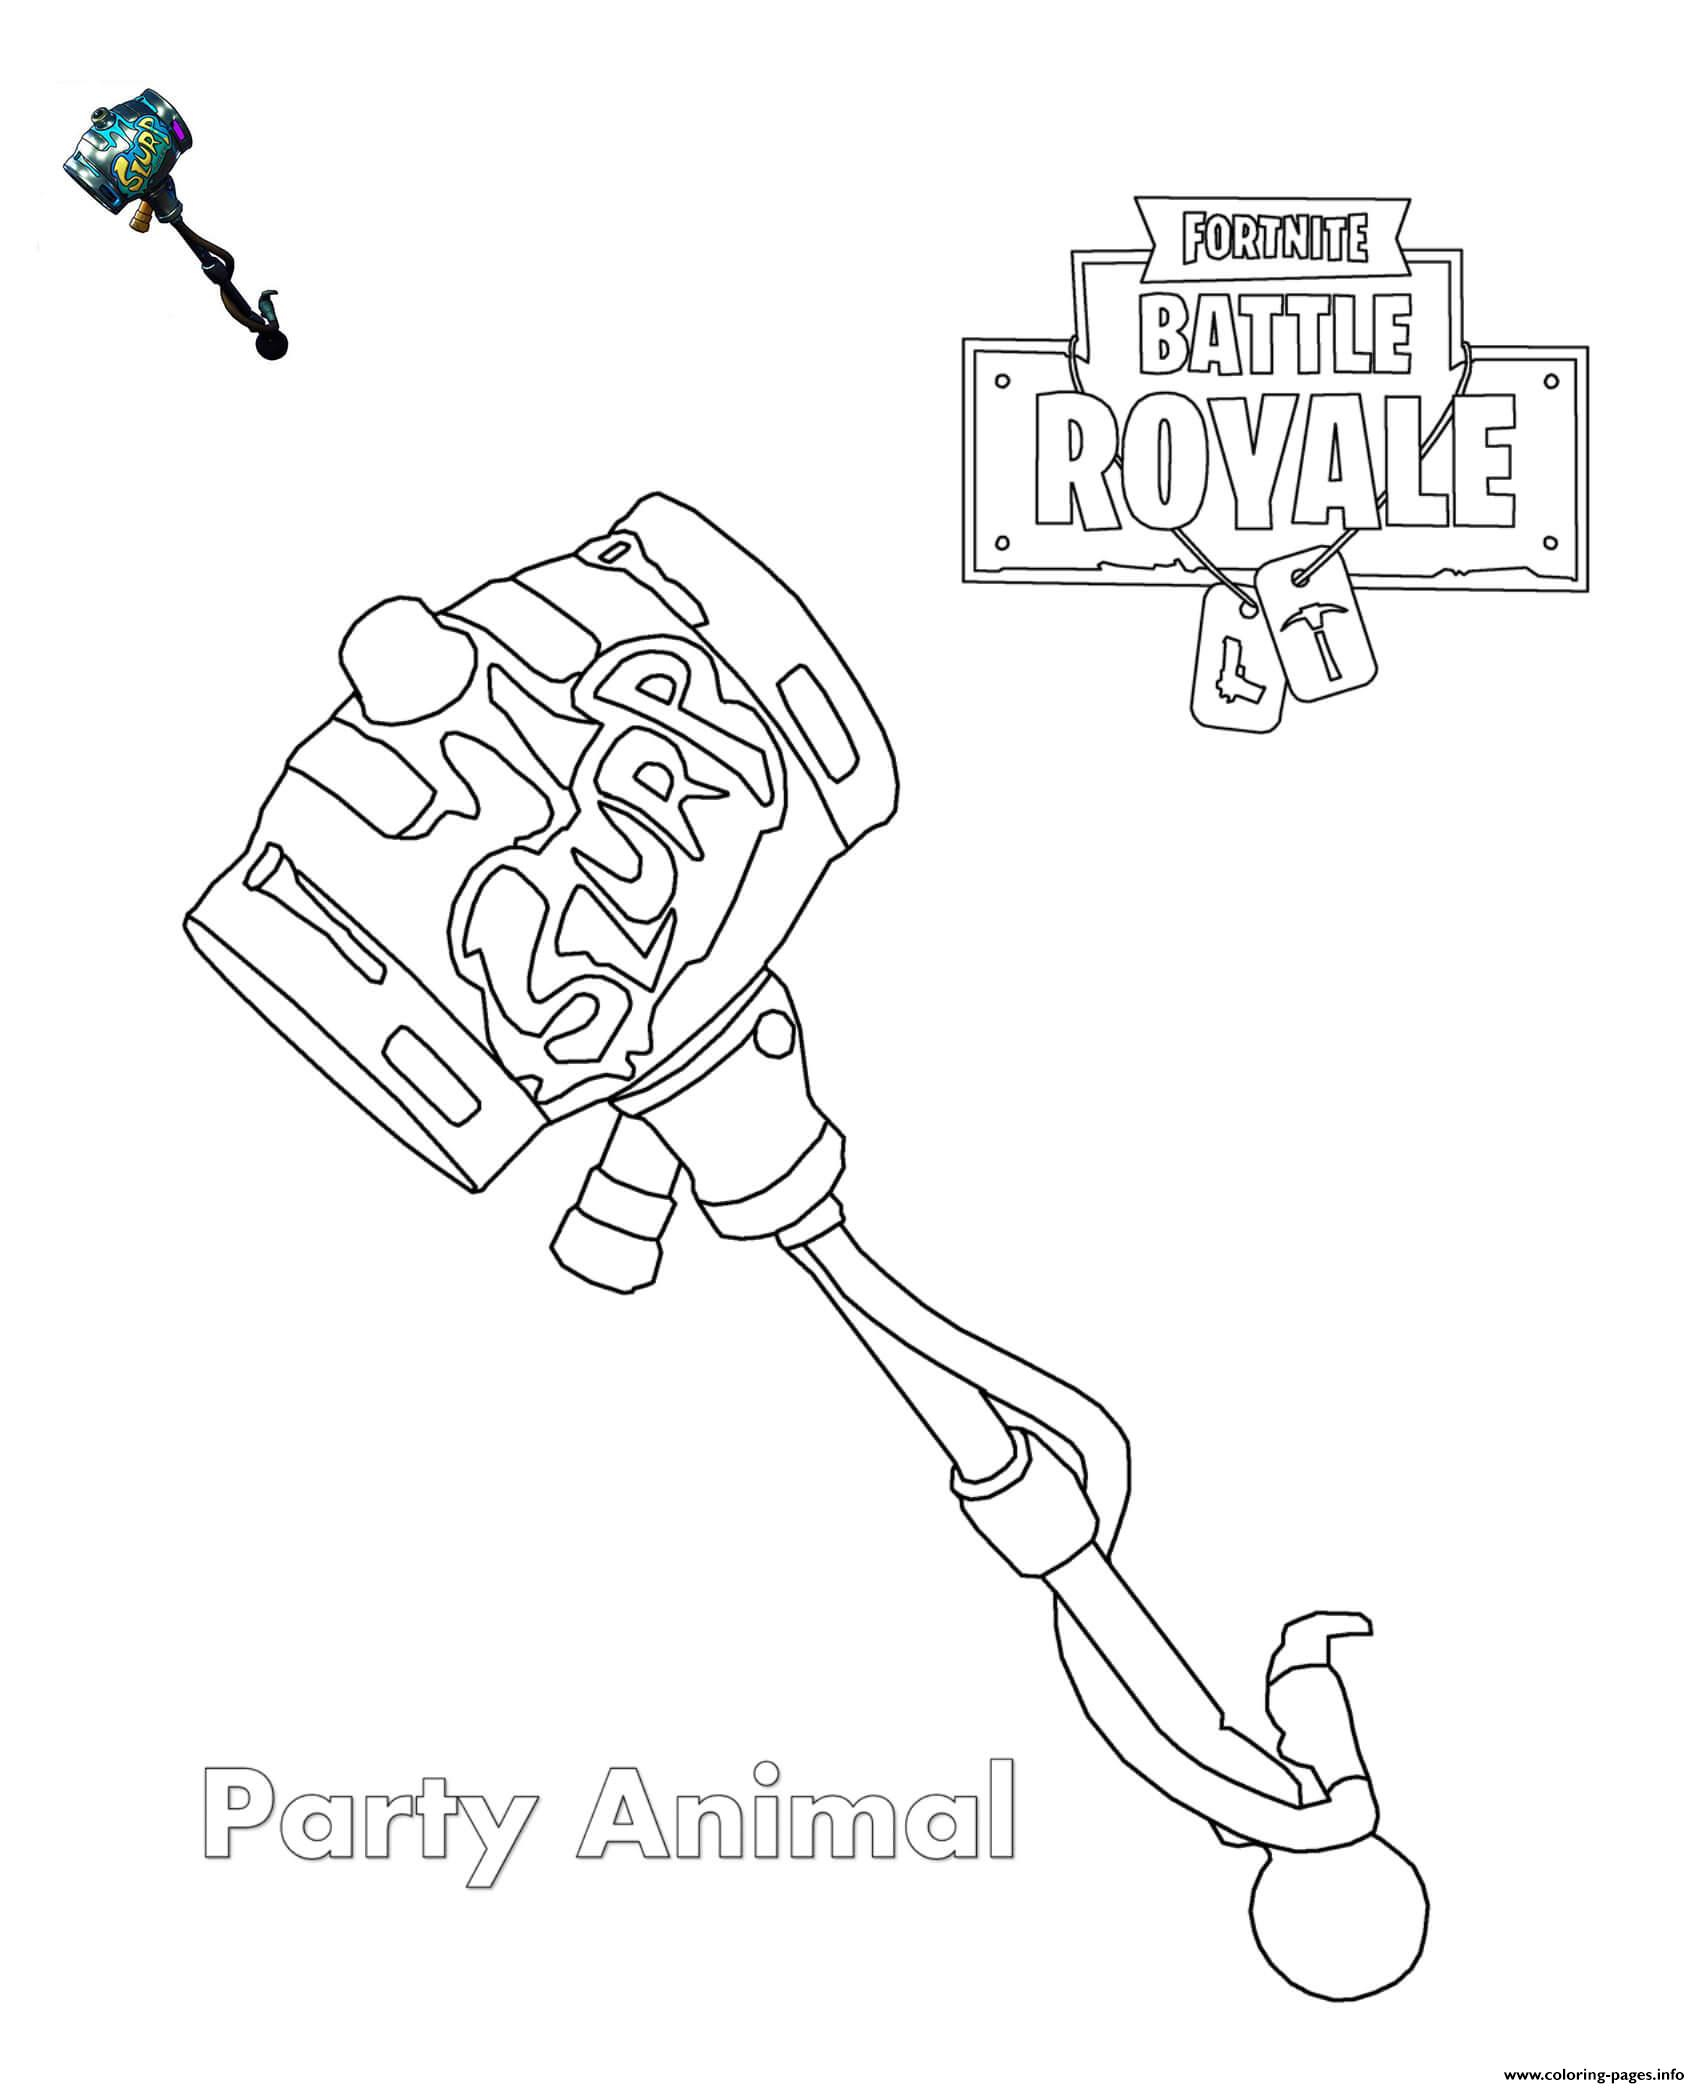 Party Animal Fortnite Coloring Pages Printable concernant Coloriage De Fortnite